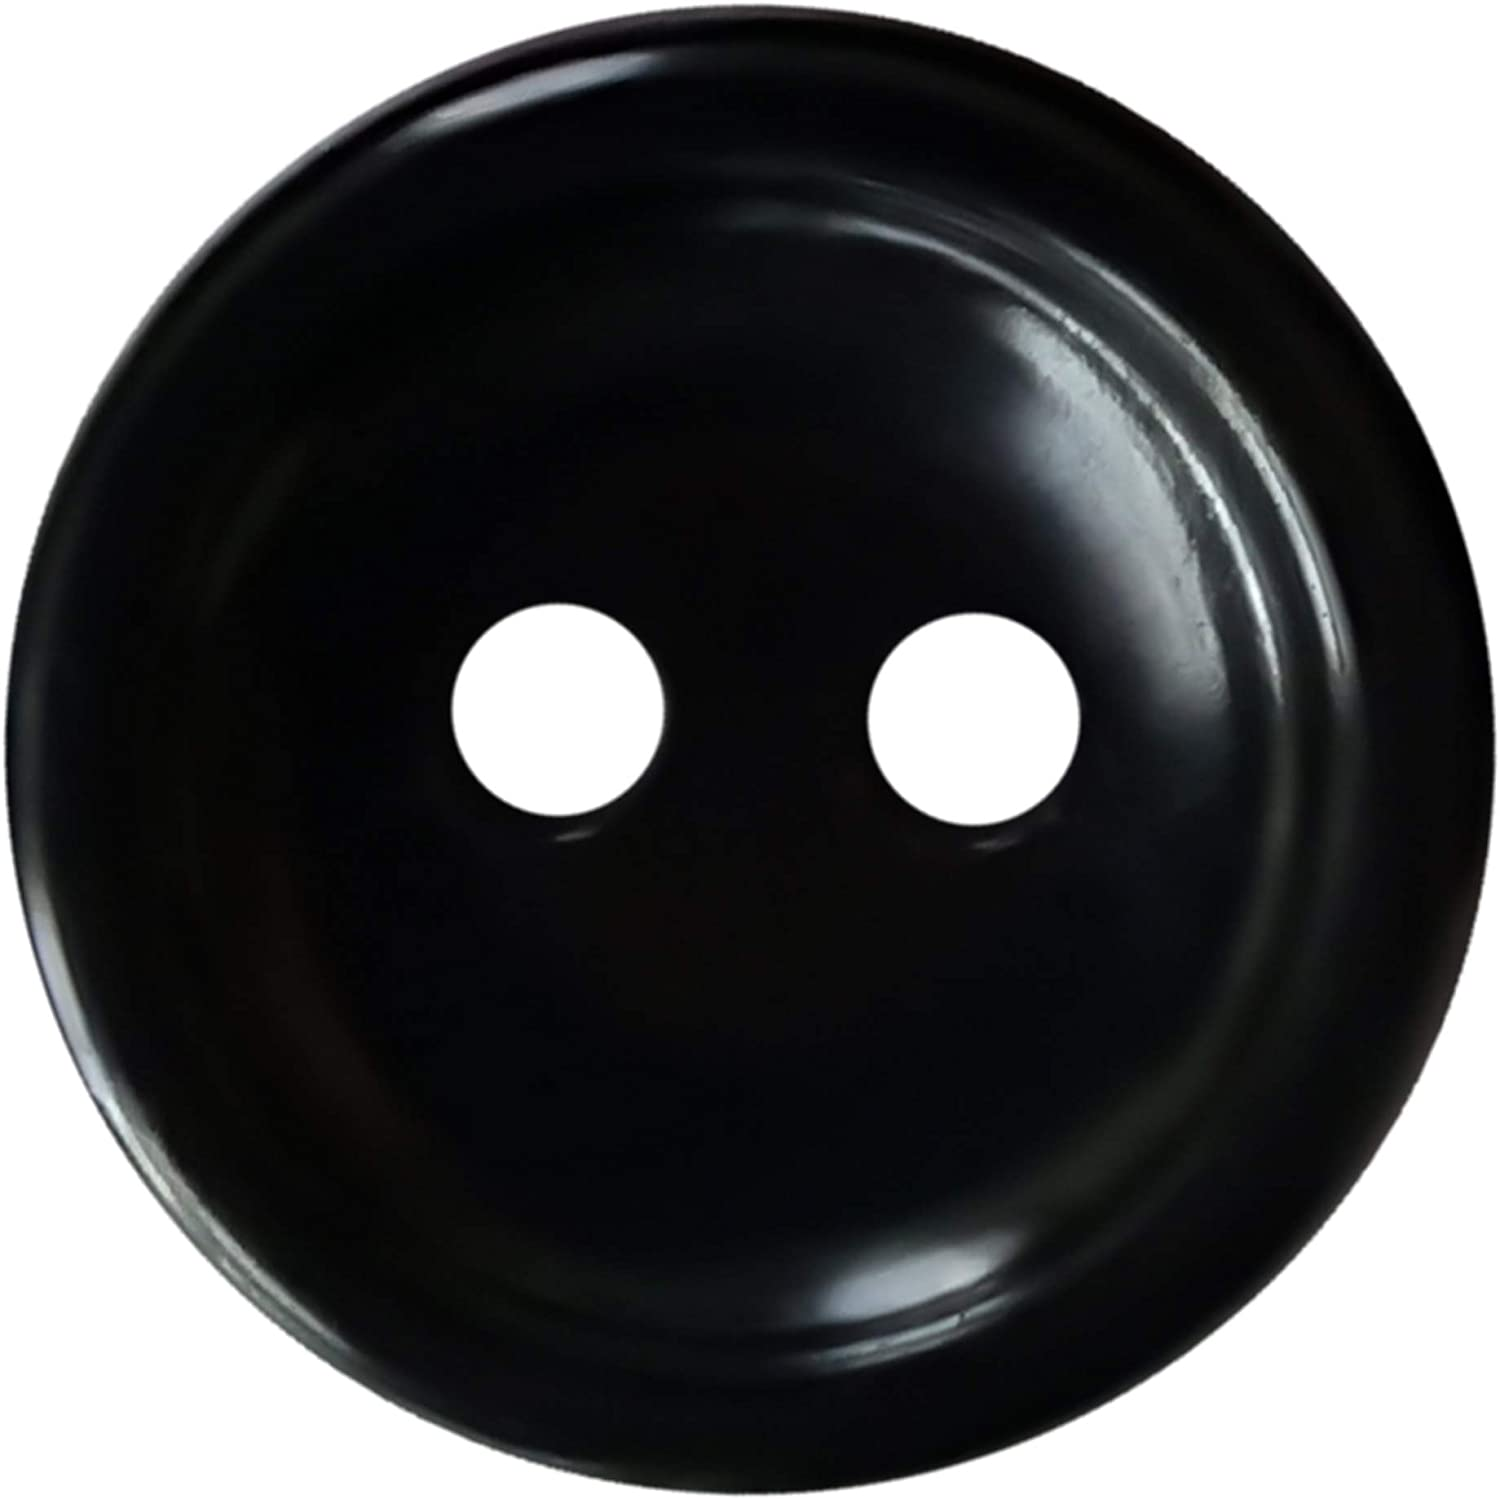 Black Buttons 0.80 inch Sewing Buttons Black 2 Hole Plastic Larg